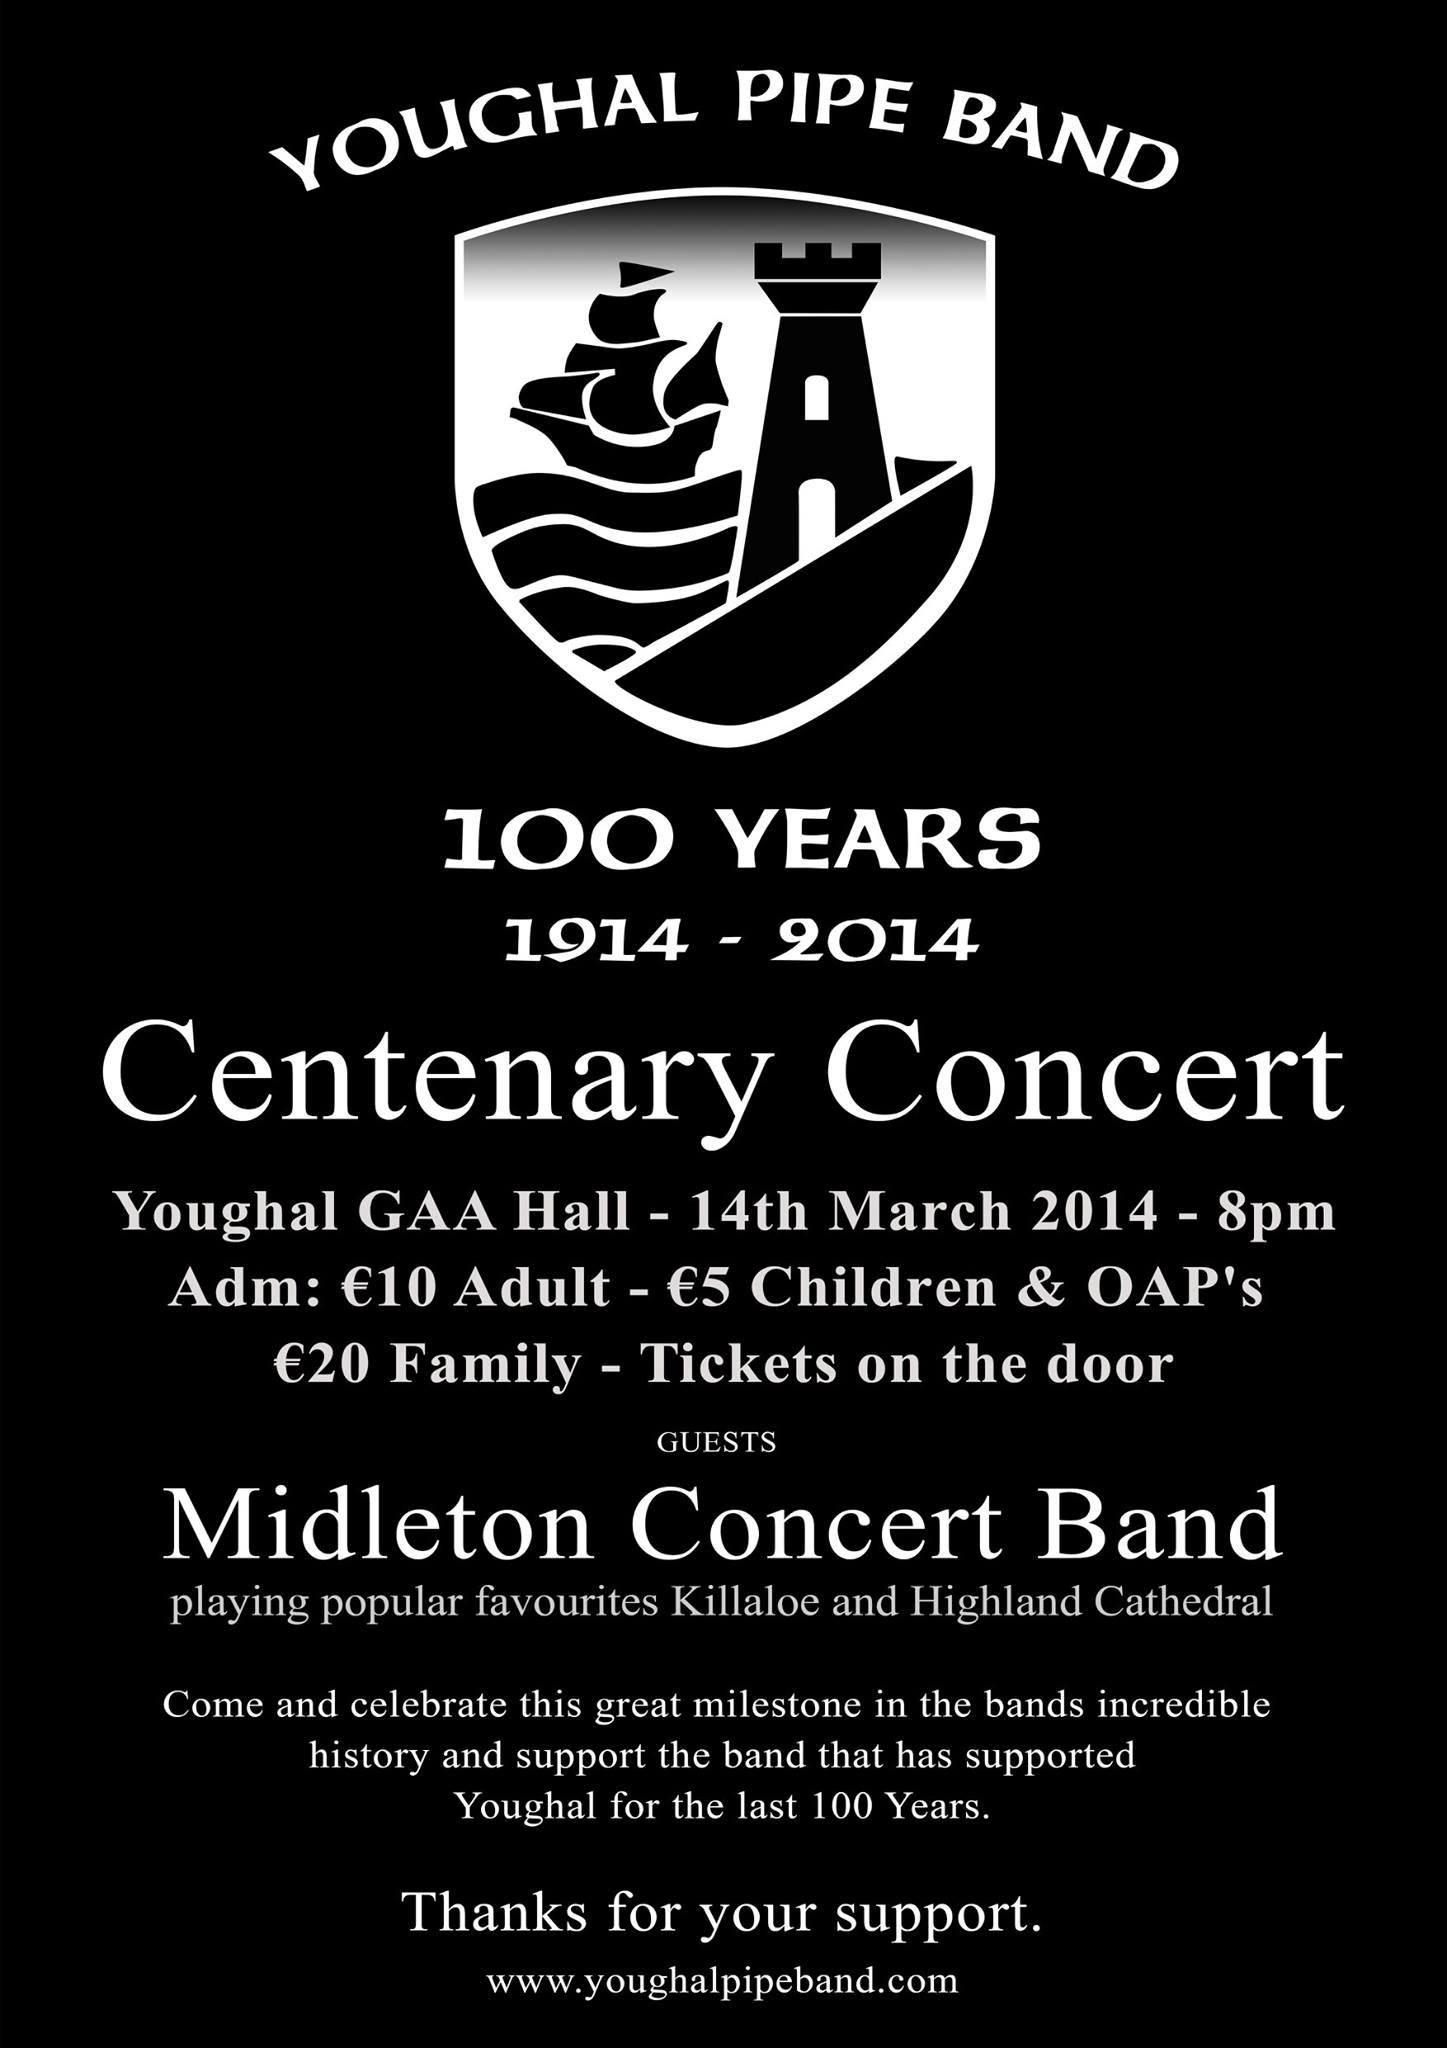 Youghal Pipe Band Centenary Concert